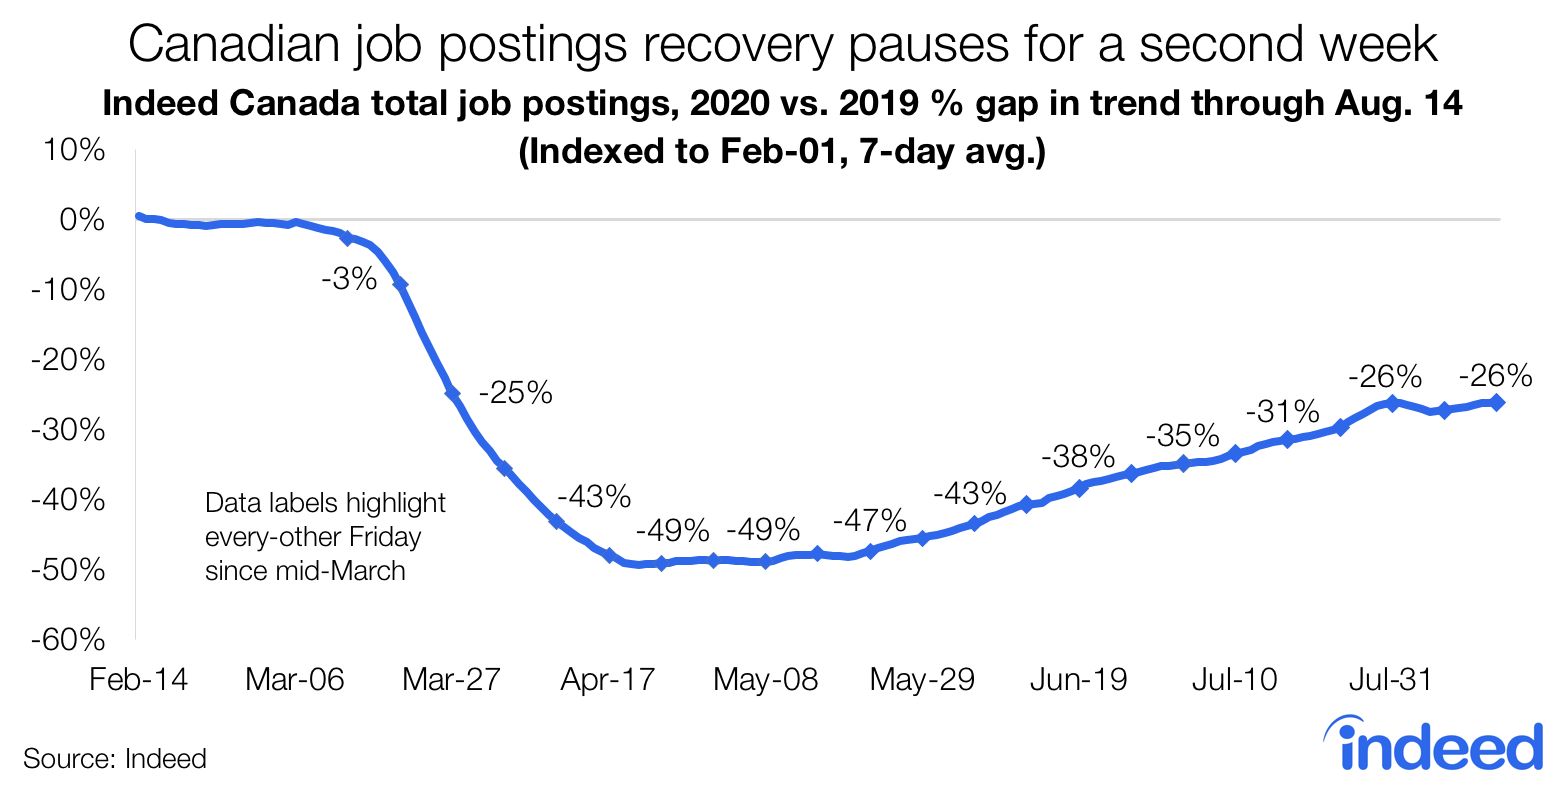 Job postings recovery in Canada pauses for second week COVID Indeed data.